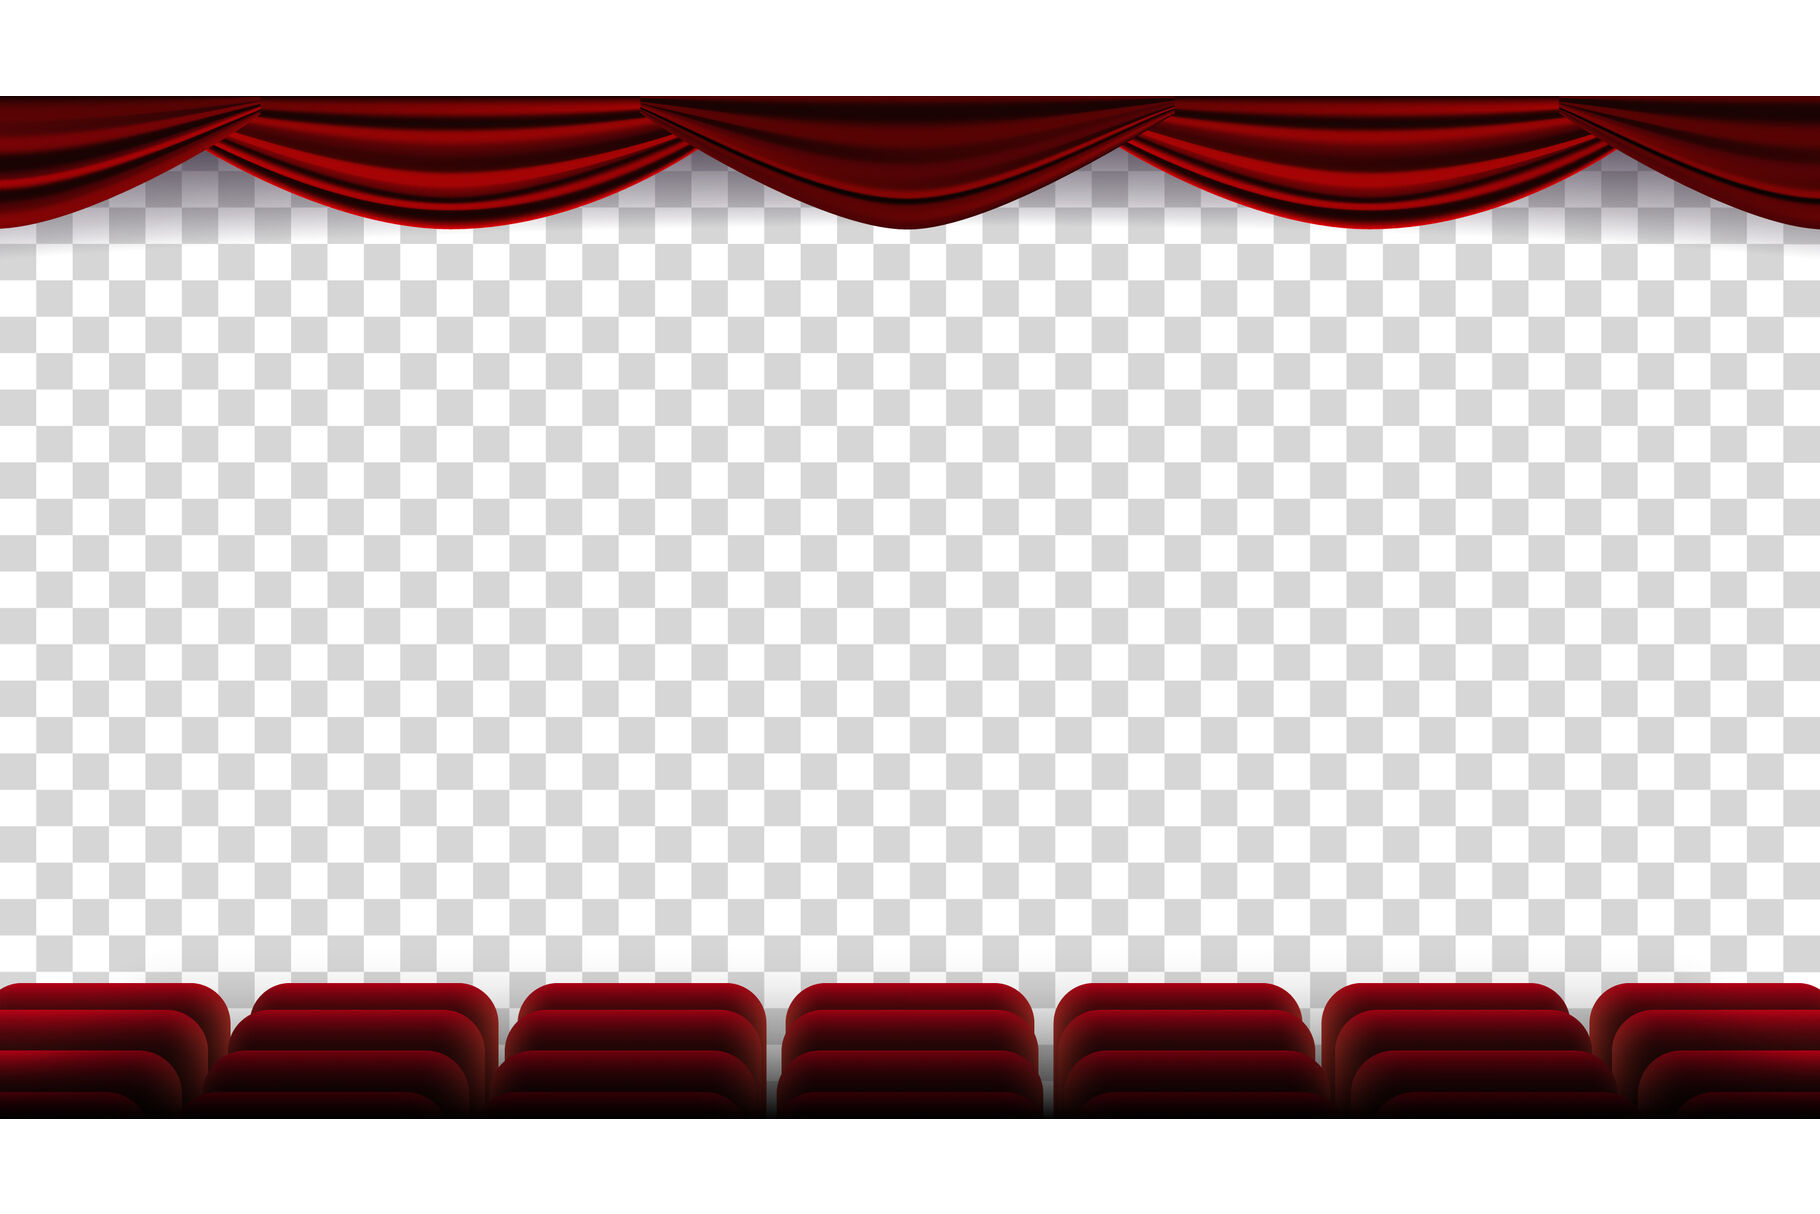 Cinema Chairs Vector Film Movie Theater Auditorium With Red Seat Row Of Chairs Blank Screen Isolated On Transparent Background Illustration By Pikepicture Thehungryjpeg Com